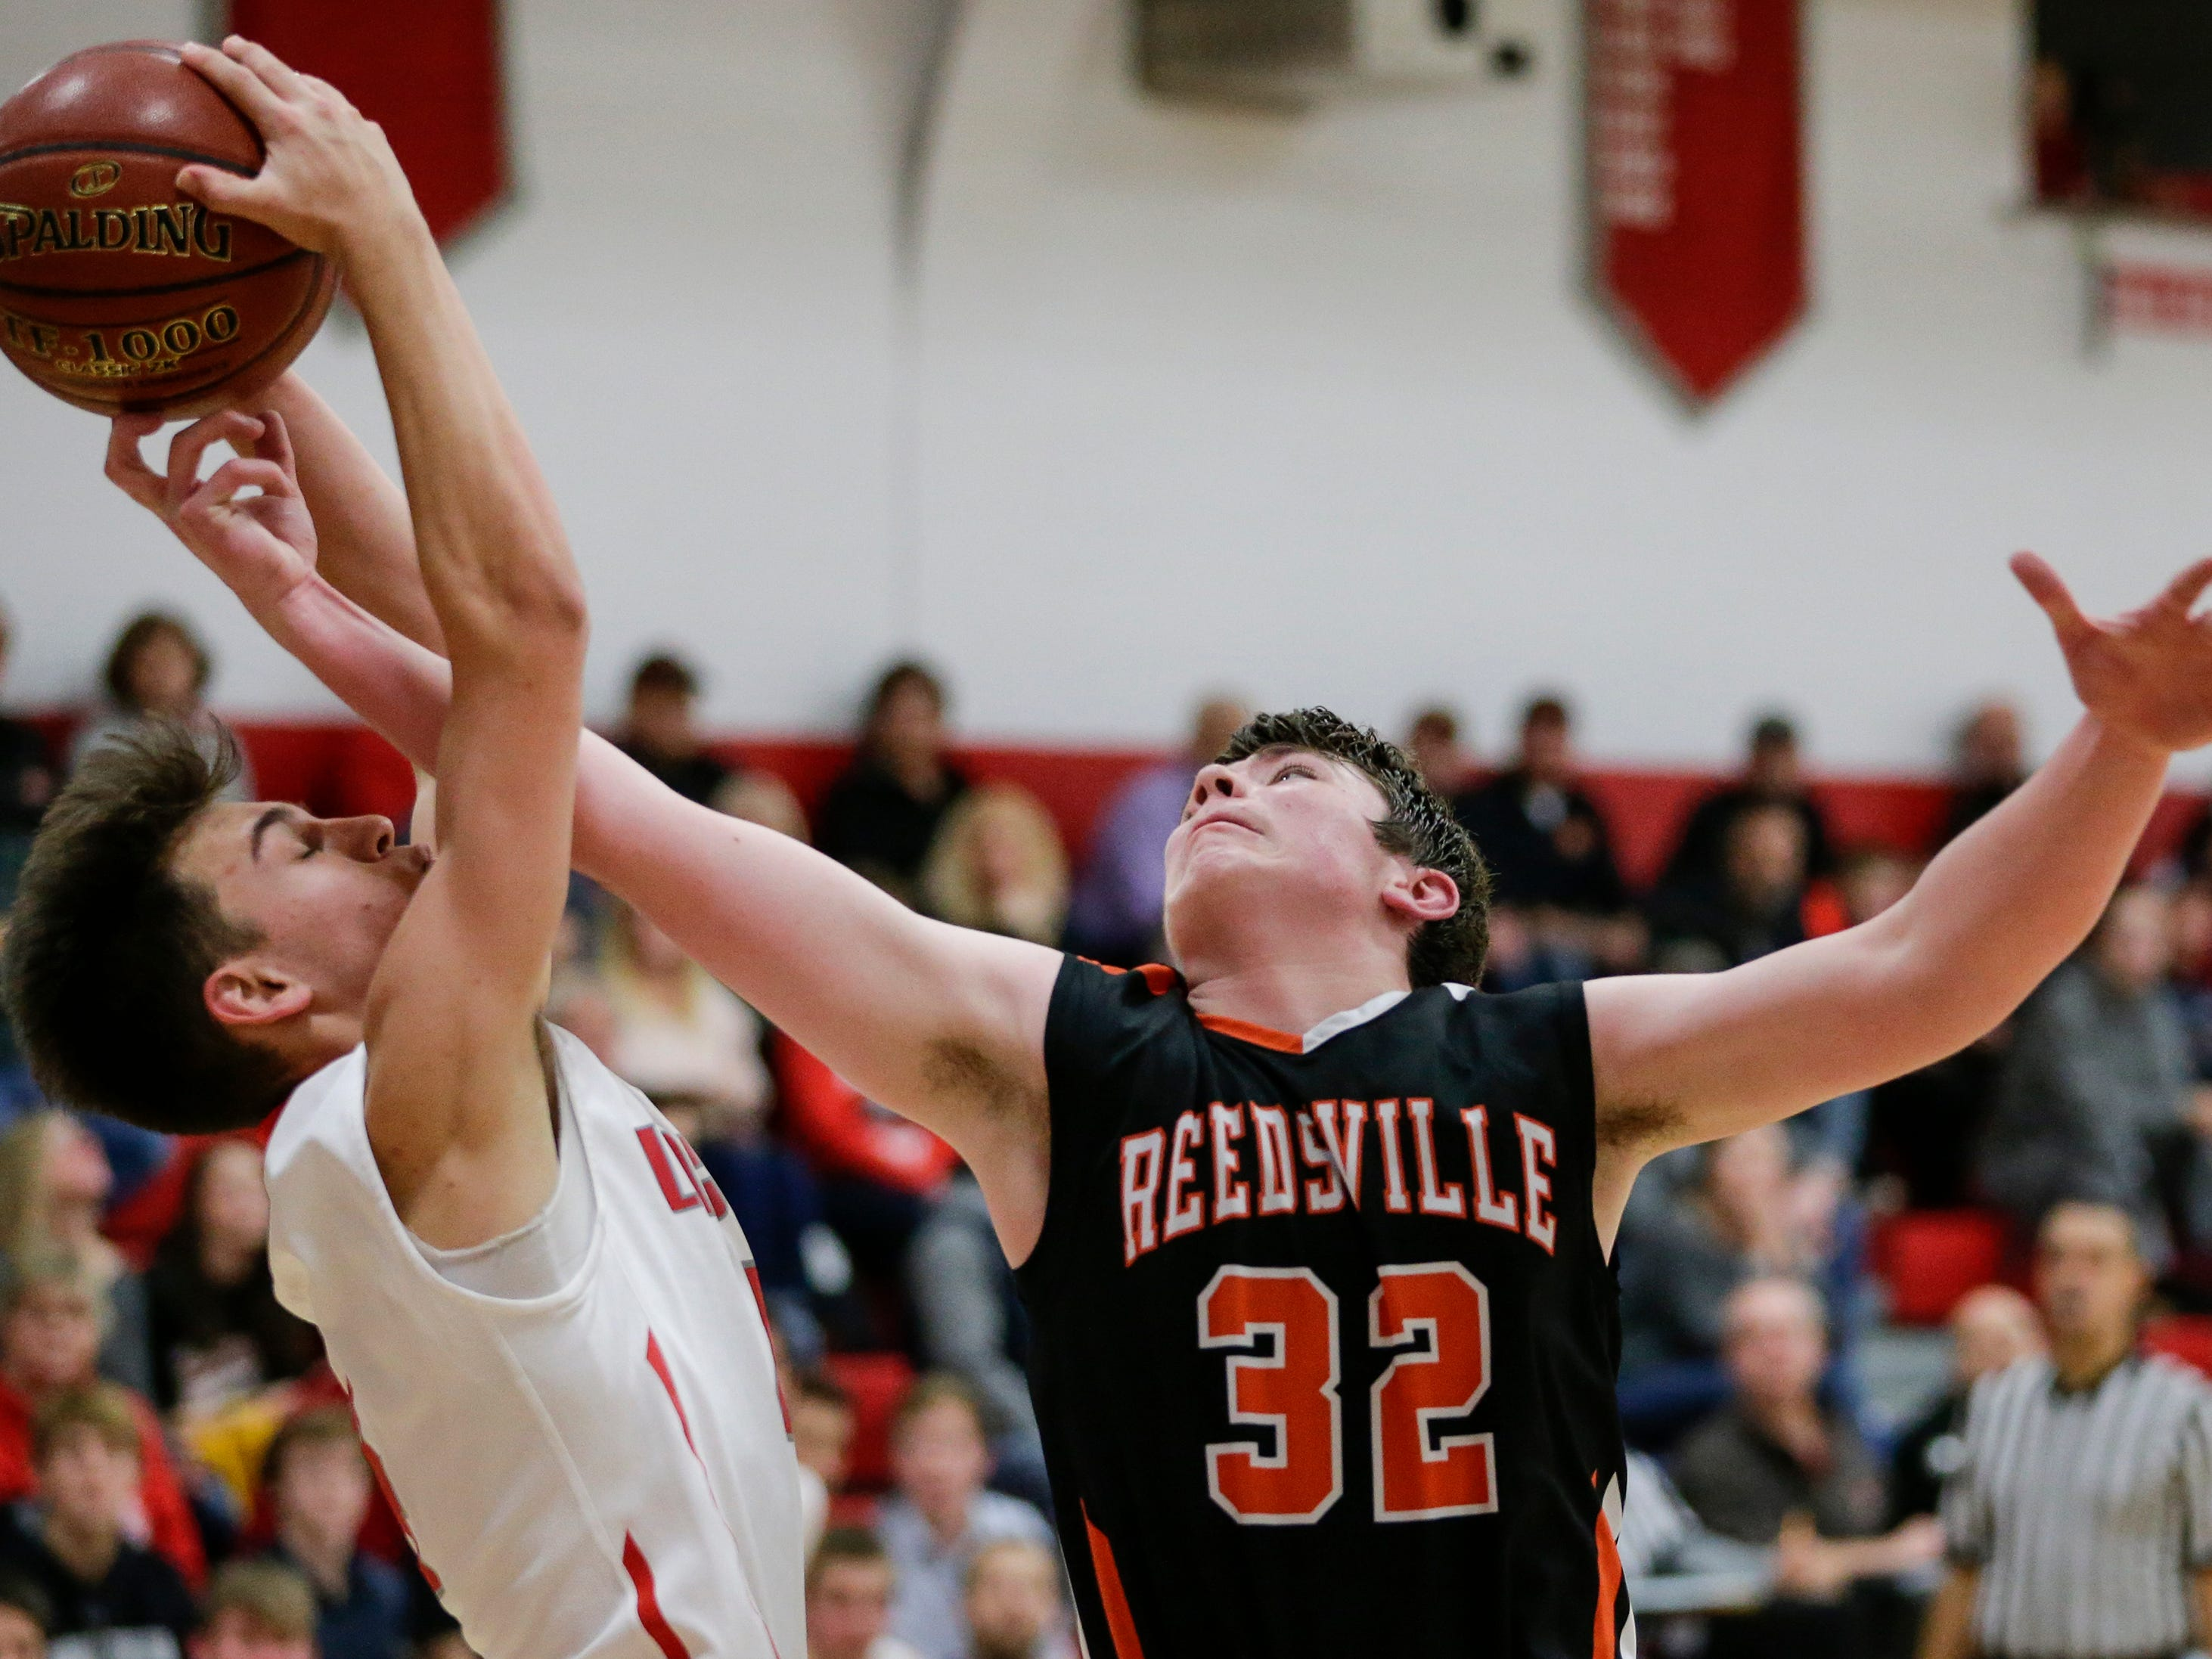 Reedsville's Micheal Brandt swipes a rebound from Manitowoc Lutheran at Manitowoc Lutheran High School Thursday, December 20, 2018, in Manitowoc, Wis. Joshua Clark/USA TODAY NETWORK-Wisconsin